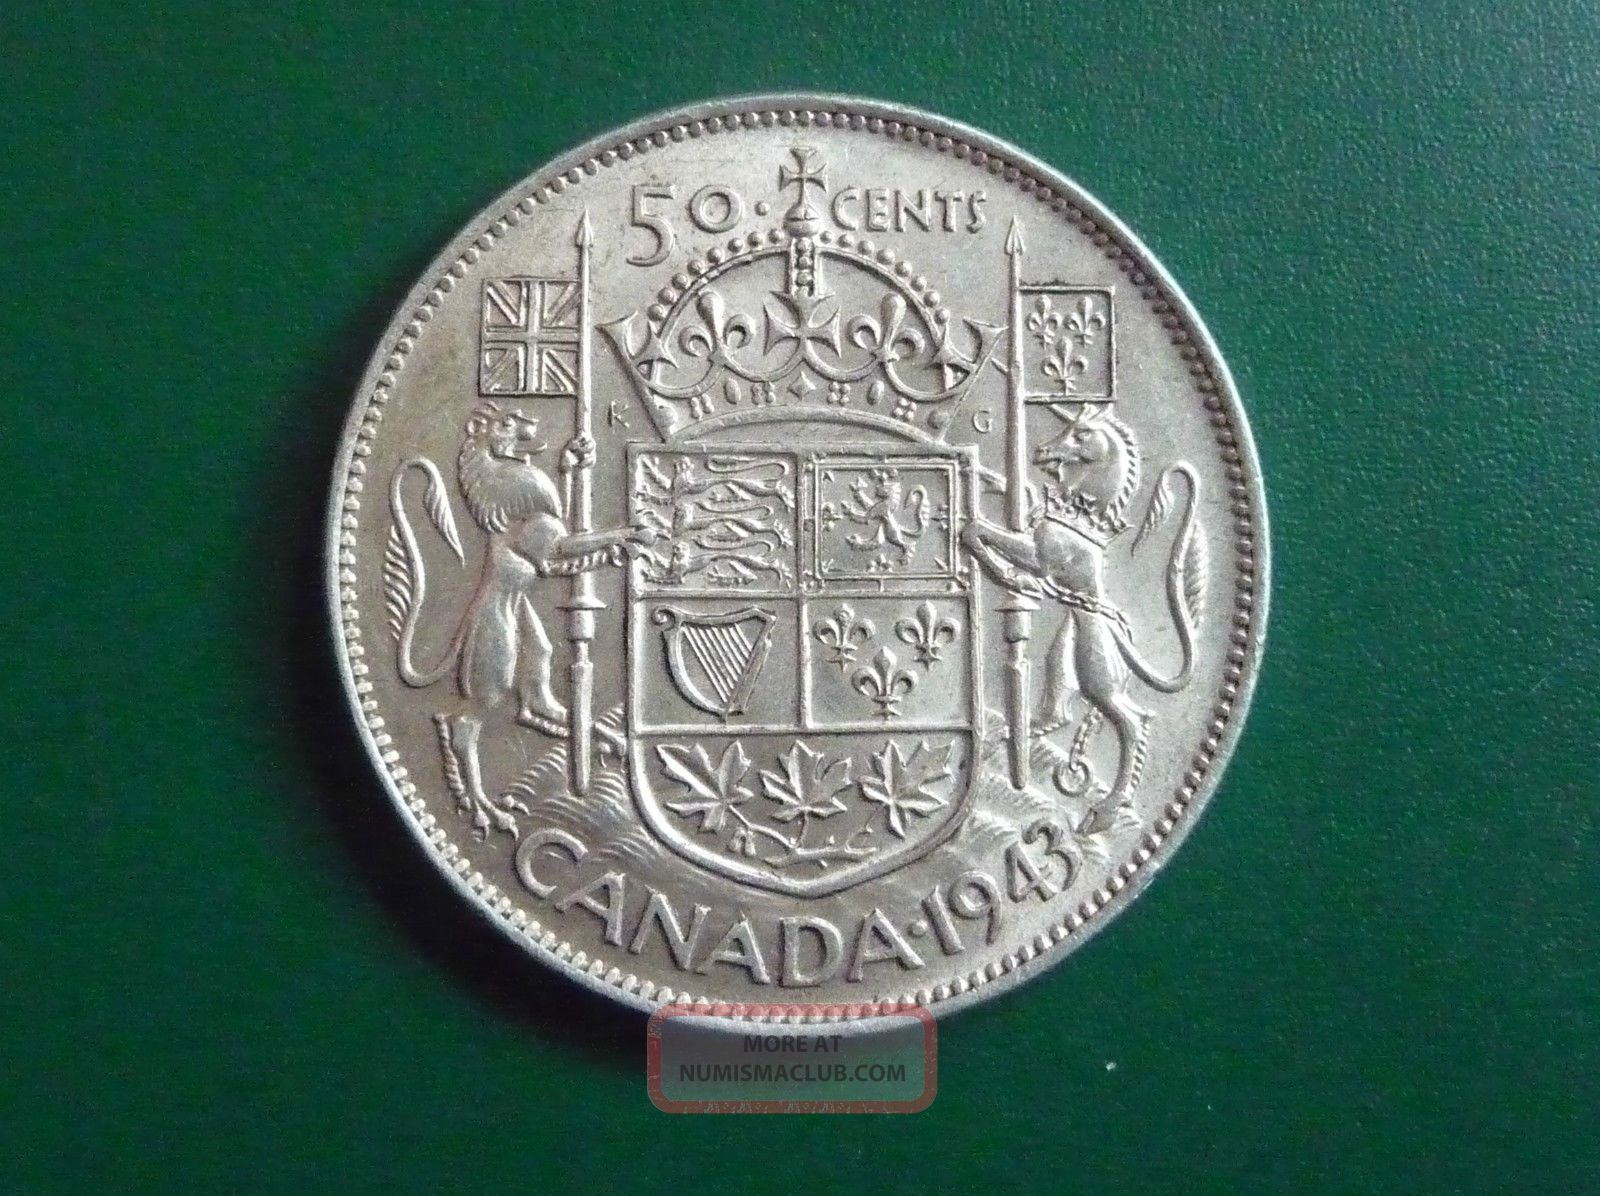 1943 Silver Canadian 50 Cent Piece